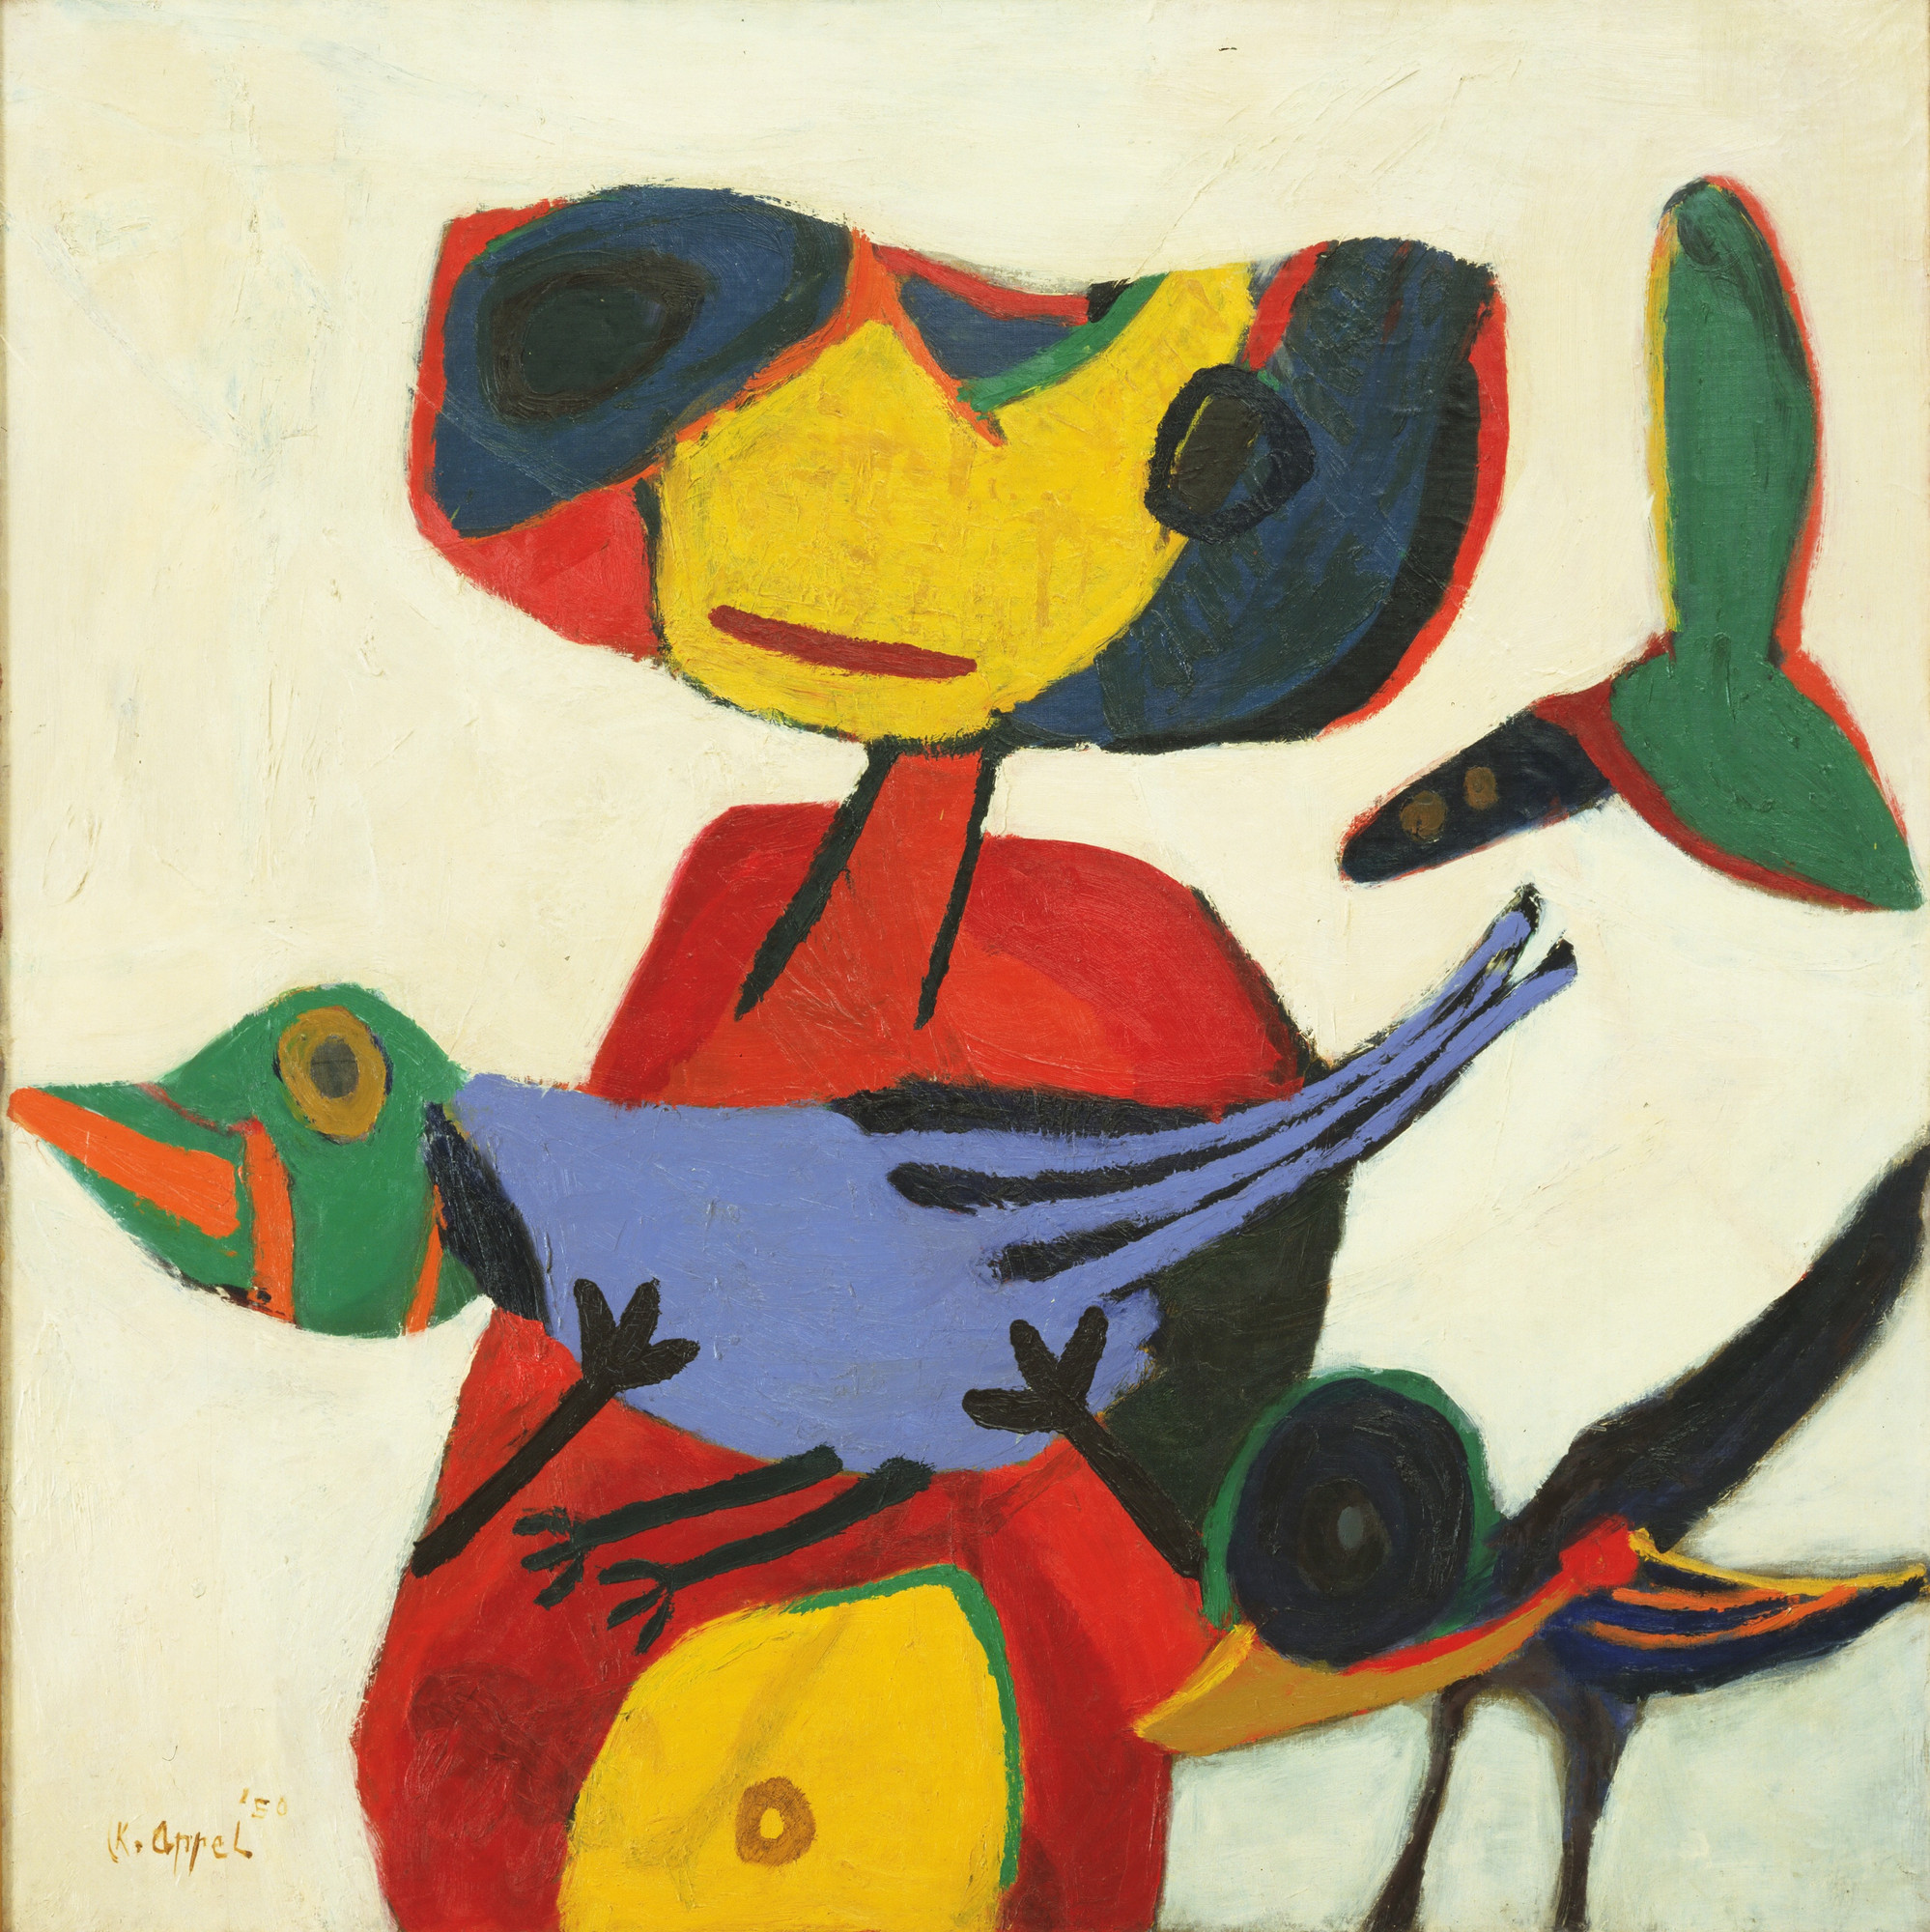 Karel Appel. Child with Birds. 1950